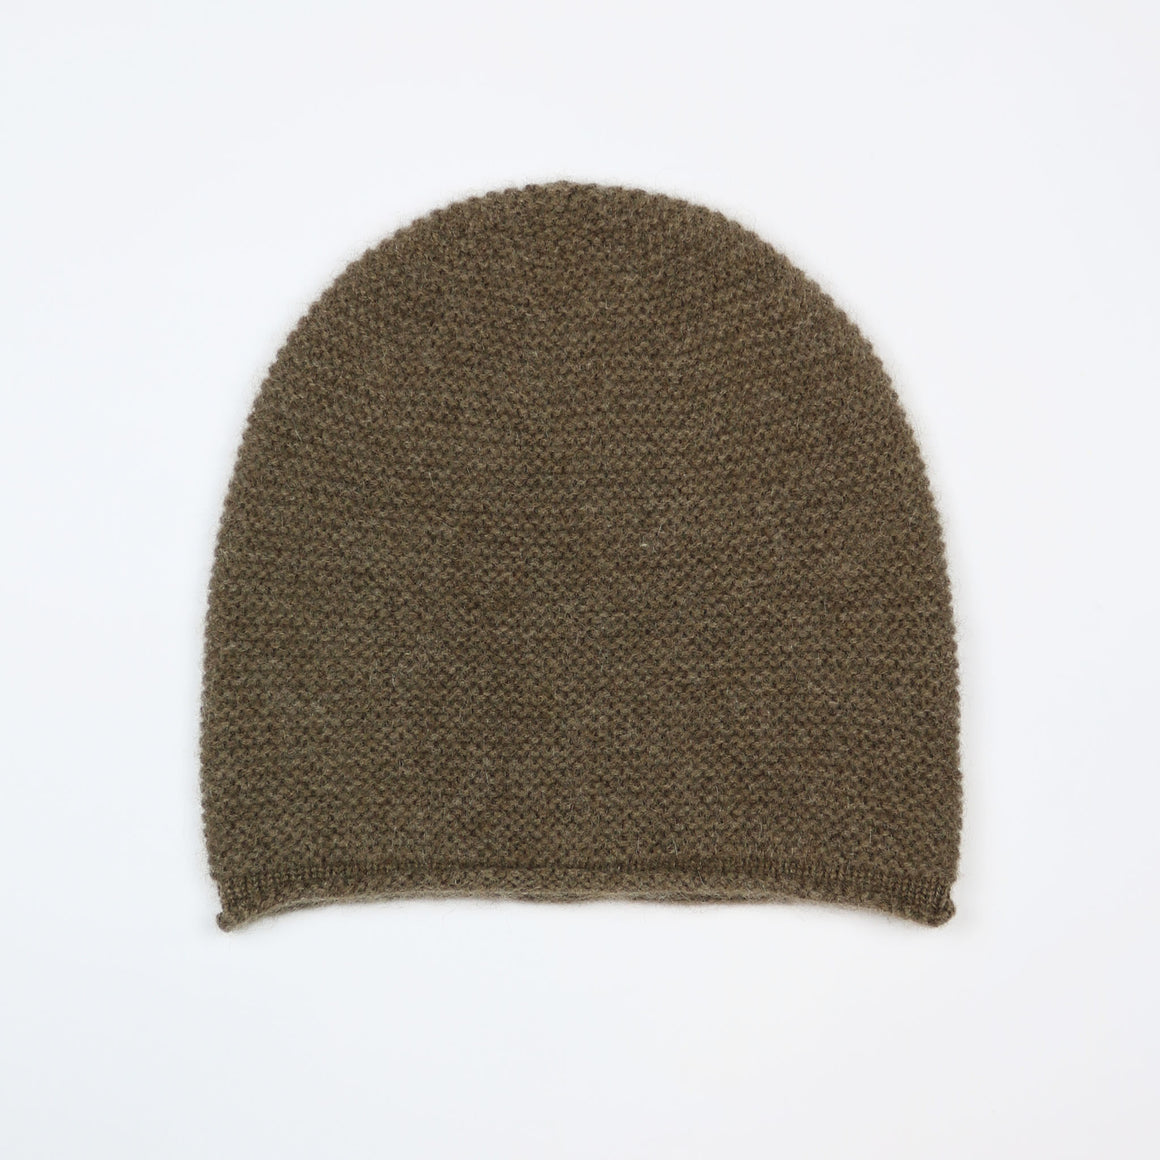 'Curly' Beanie Hat